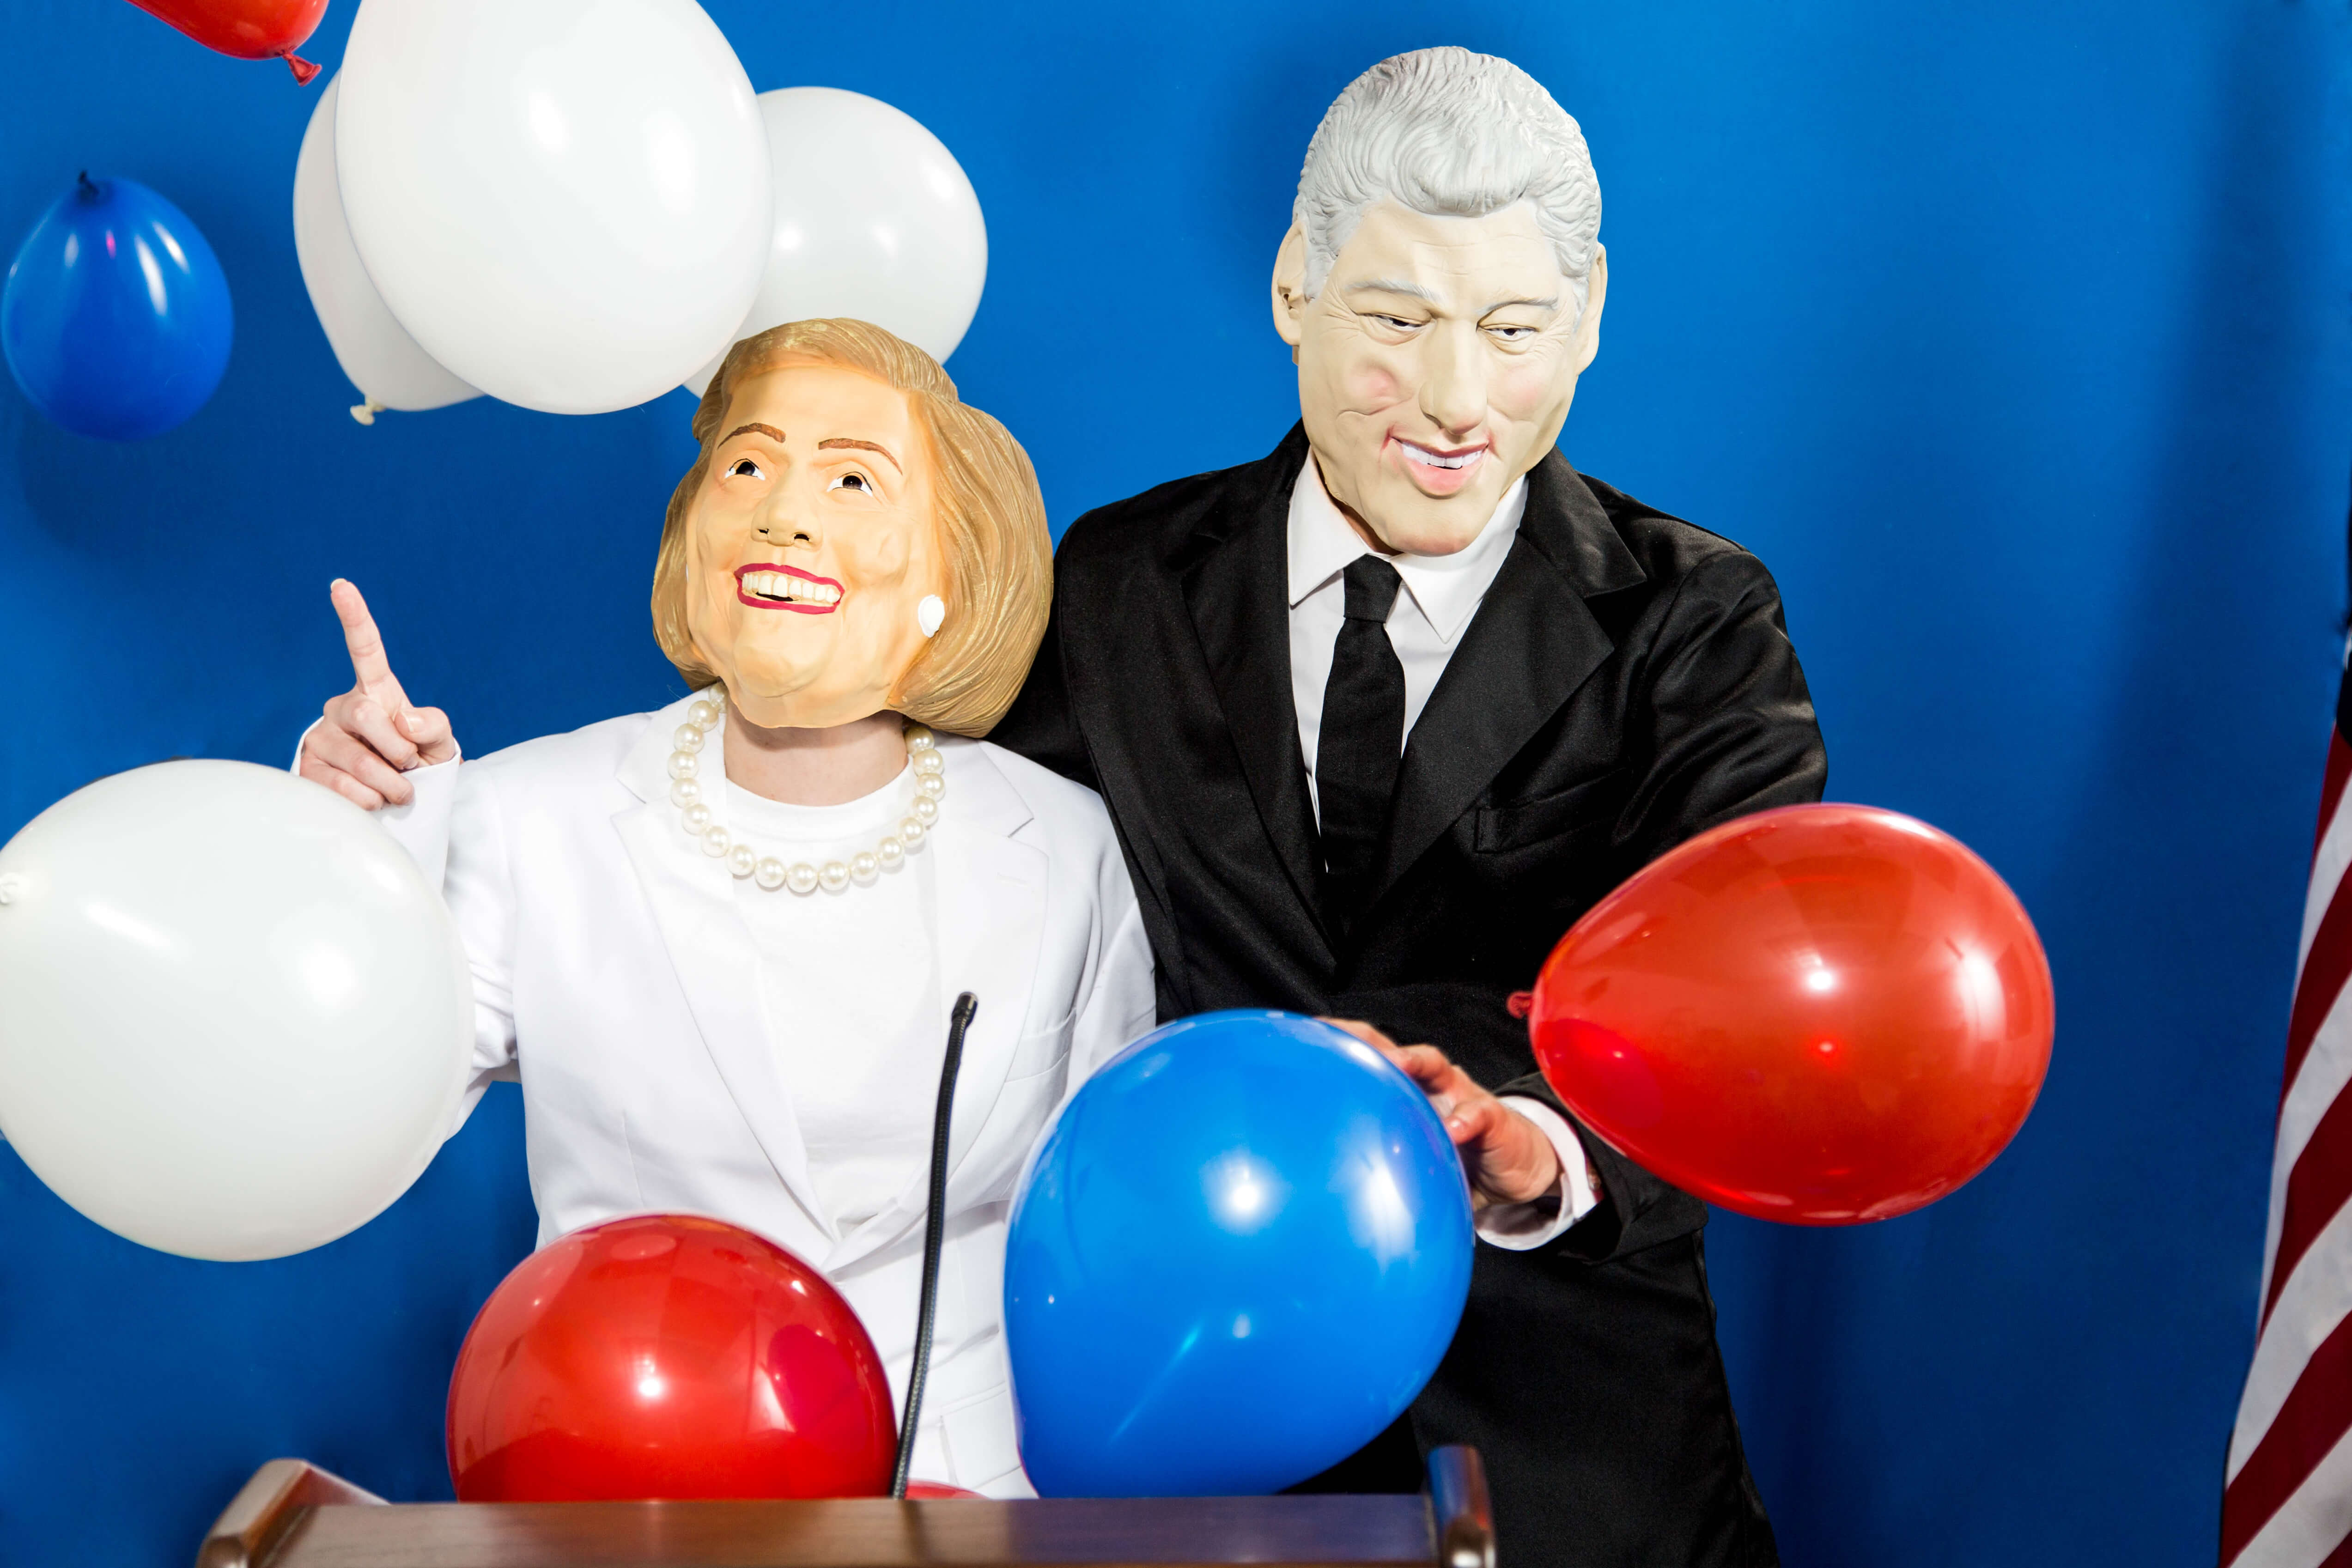 Bill and Hillary Balloon Costume